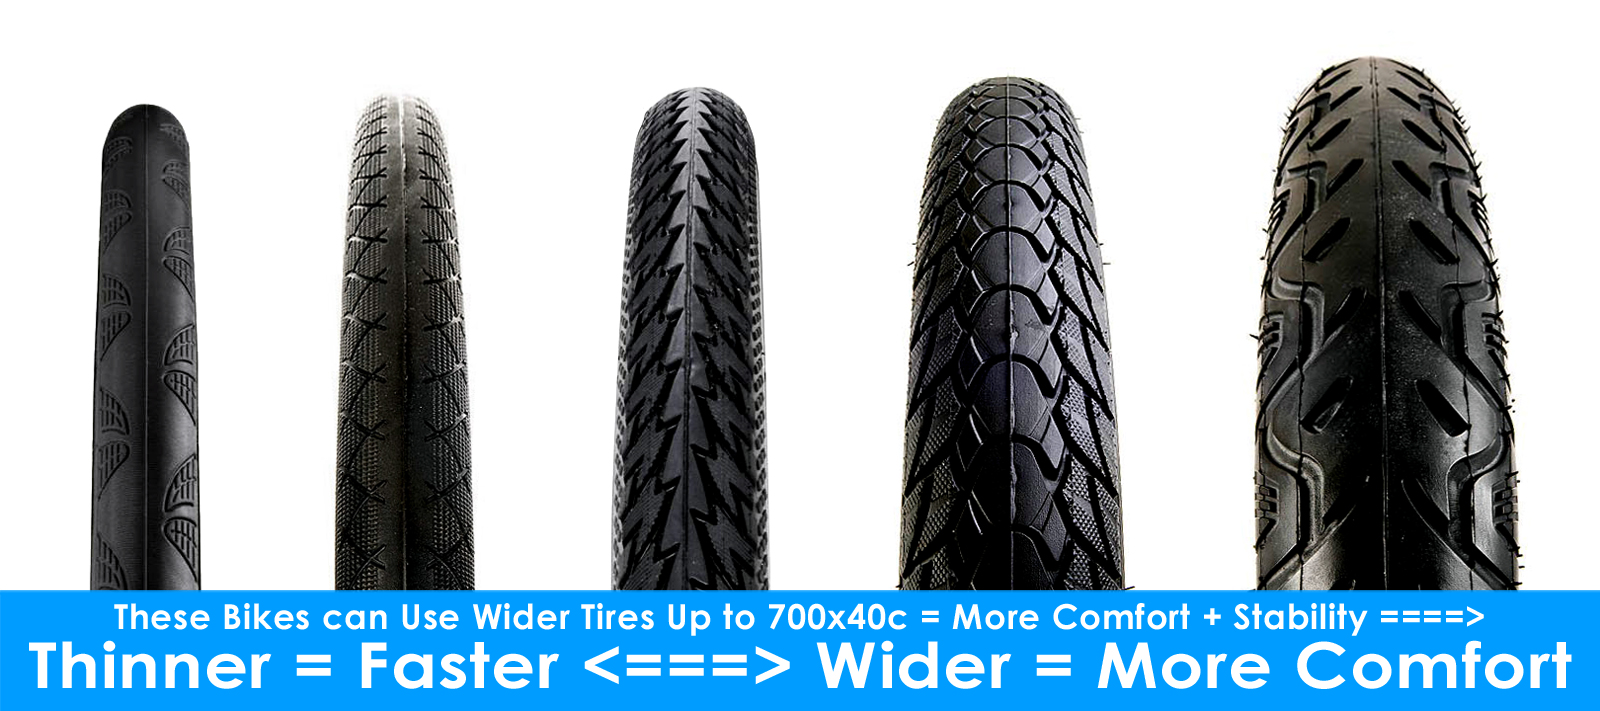 thinner = faster....wider = more comfort